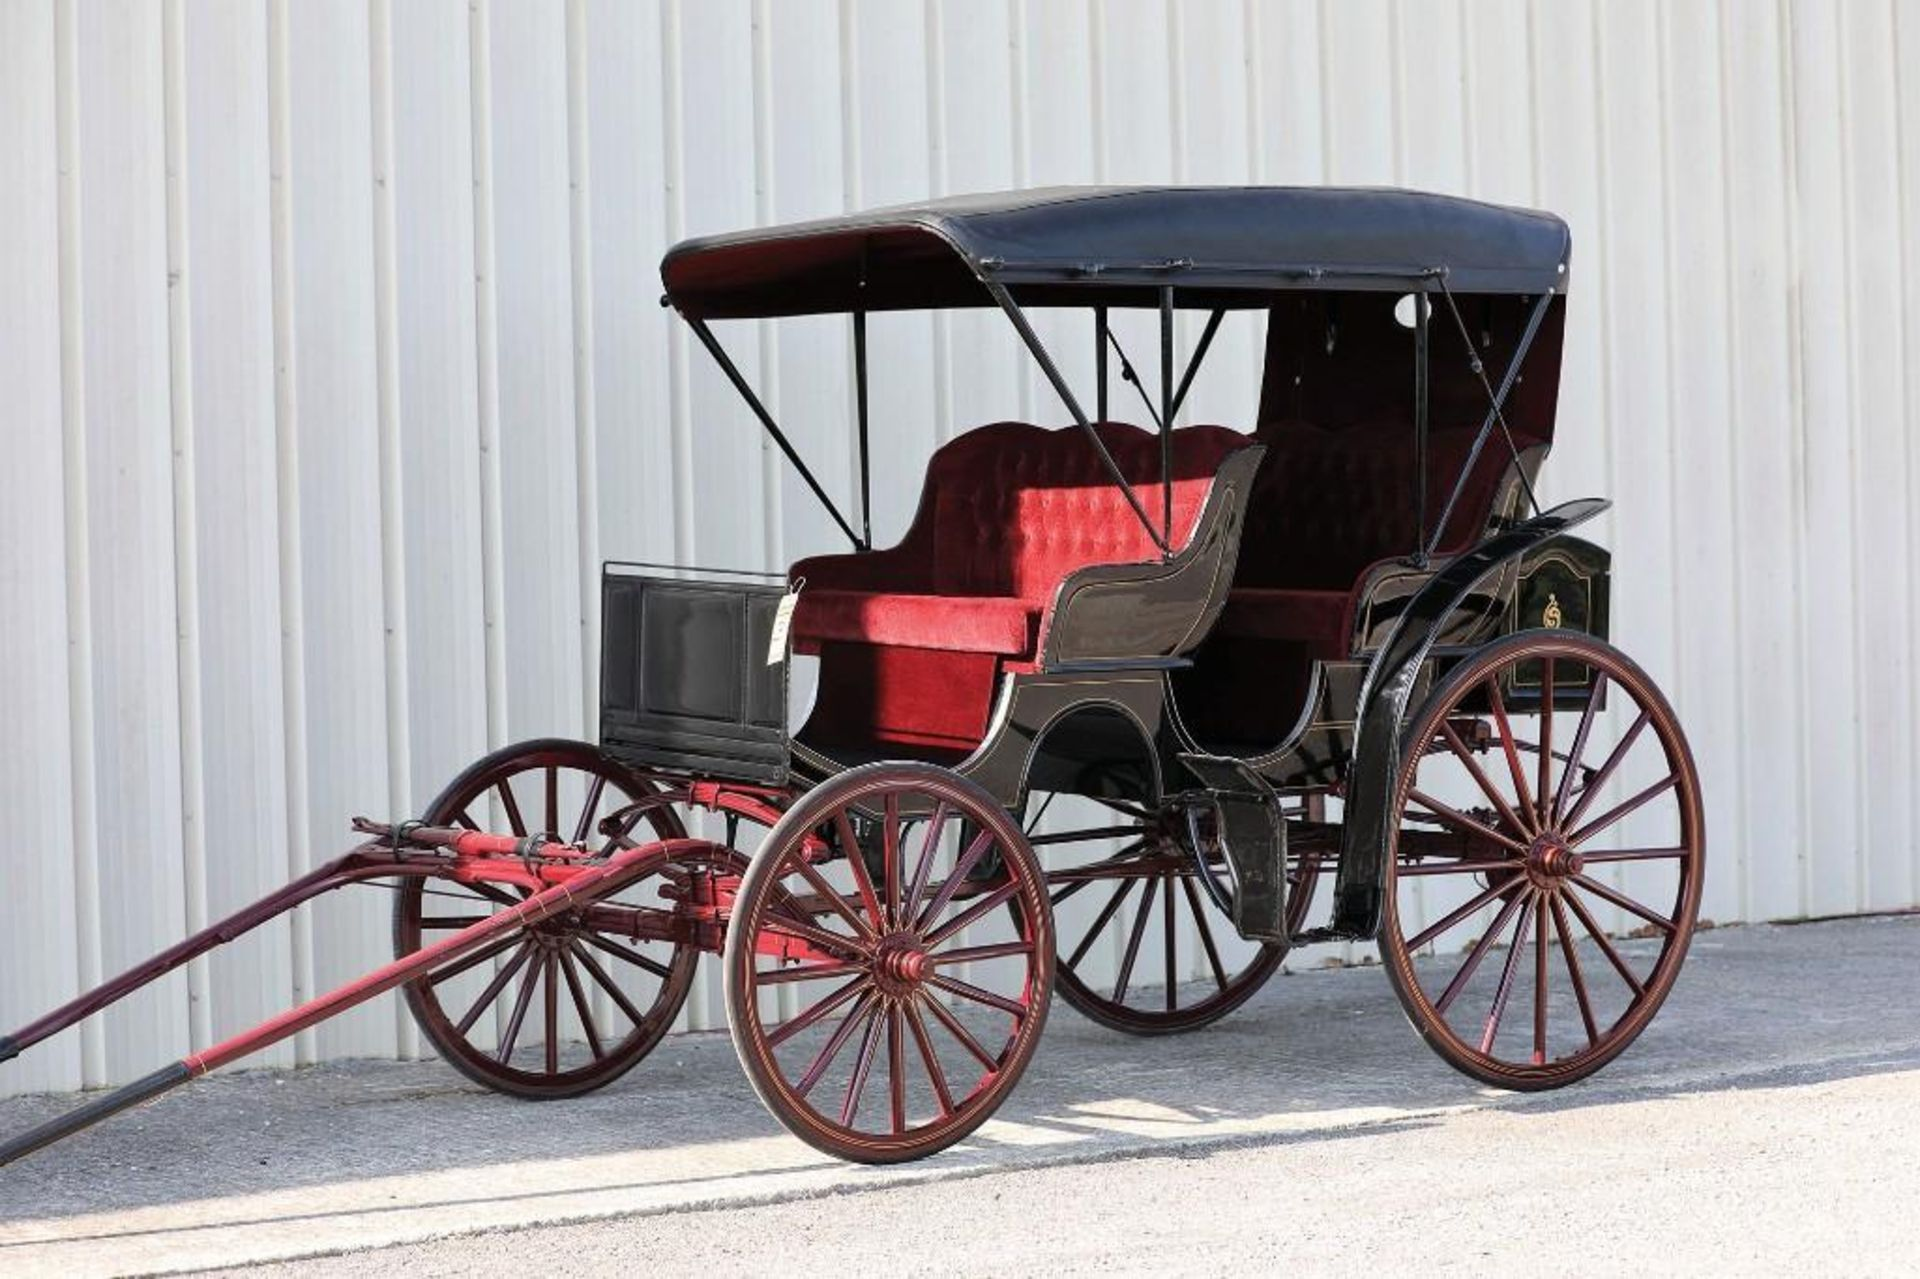 ROBERTS 2-Seat Surrey, Never Hitched - Image 2 of 2